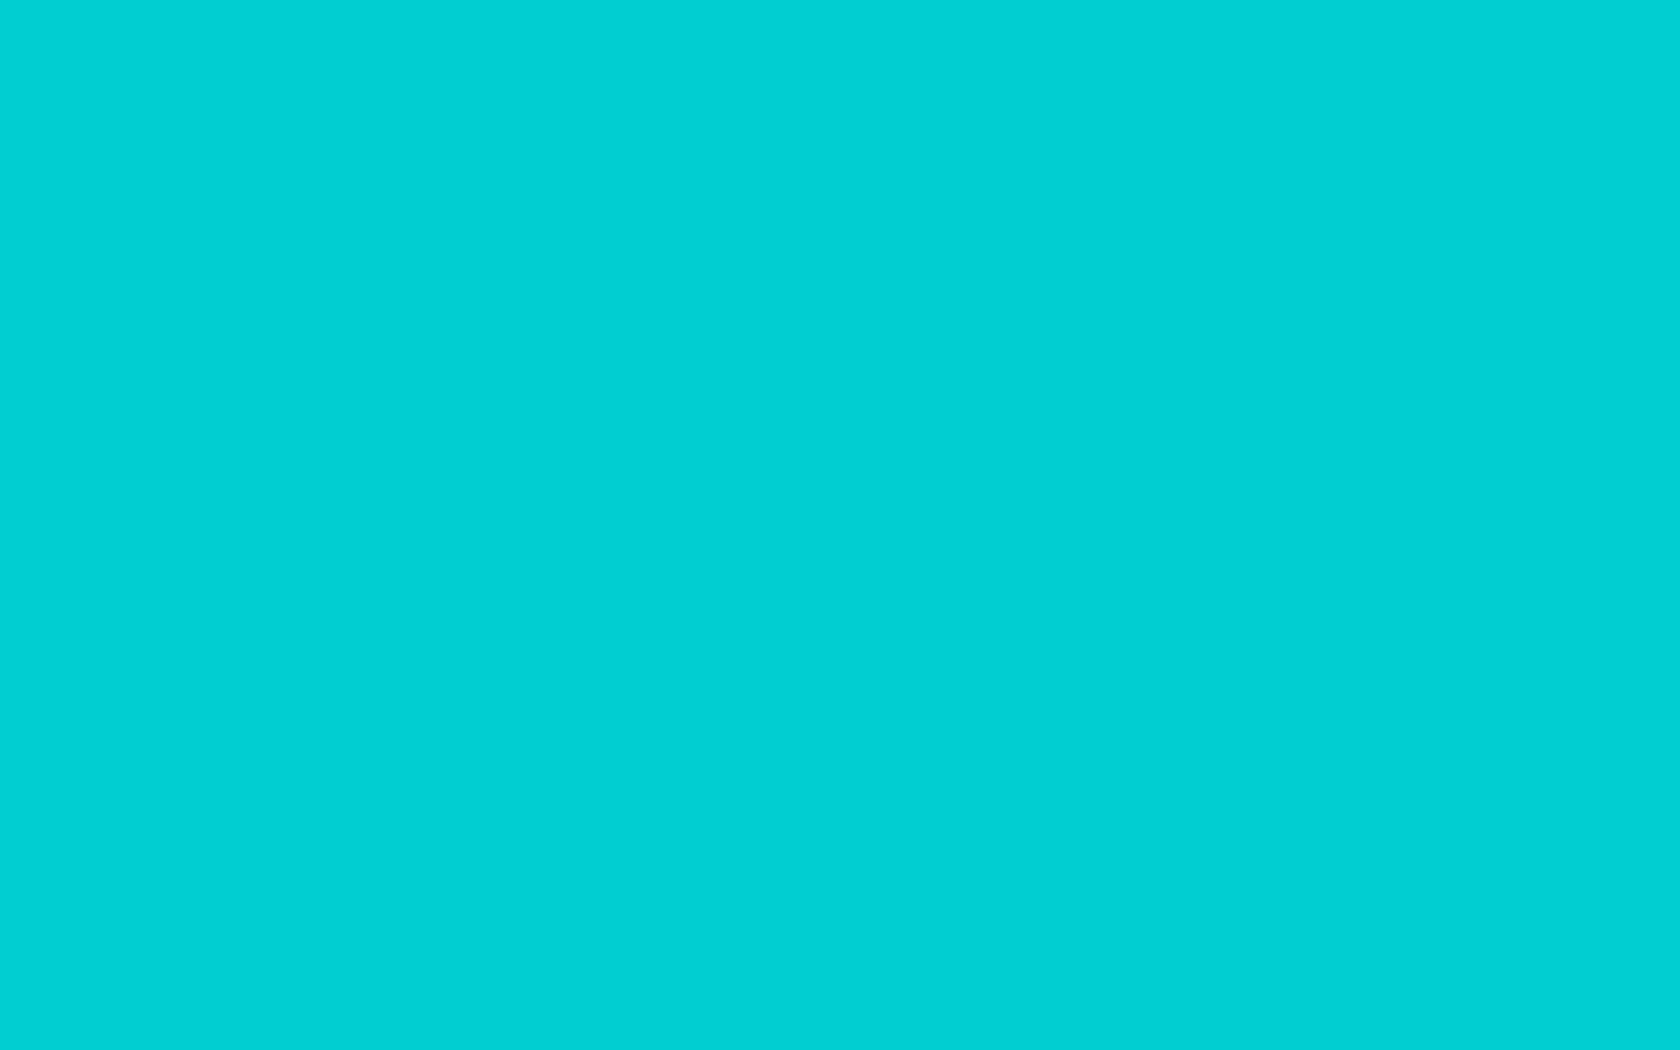 1680x1050 Dark Turquoise Solid Color Background